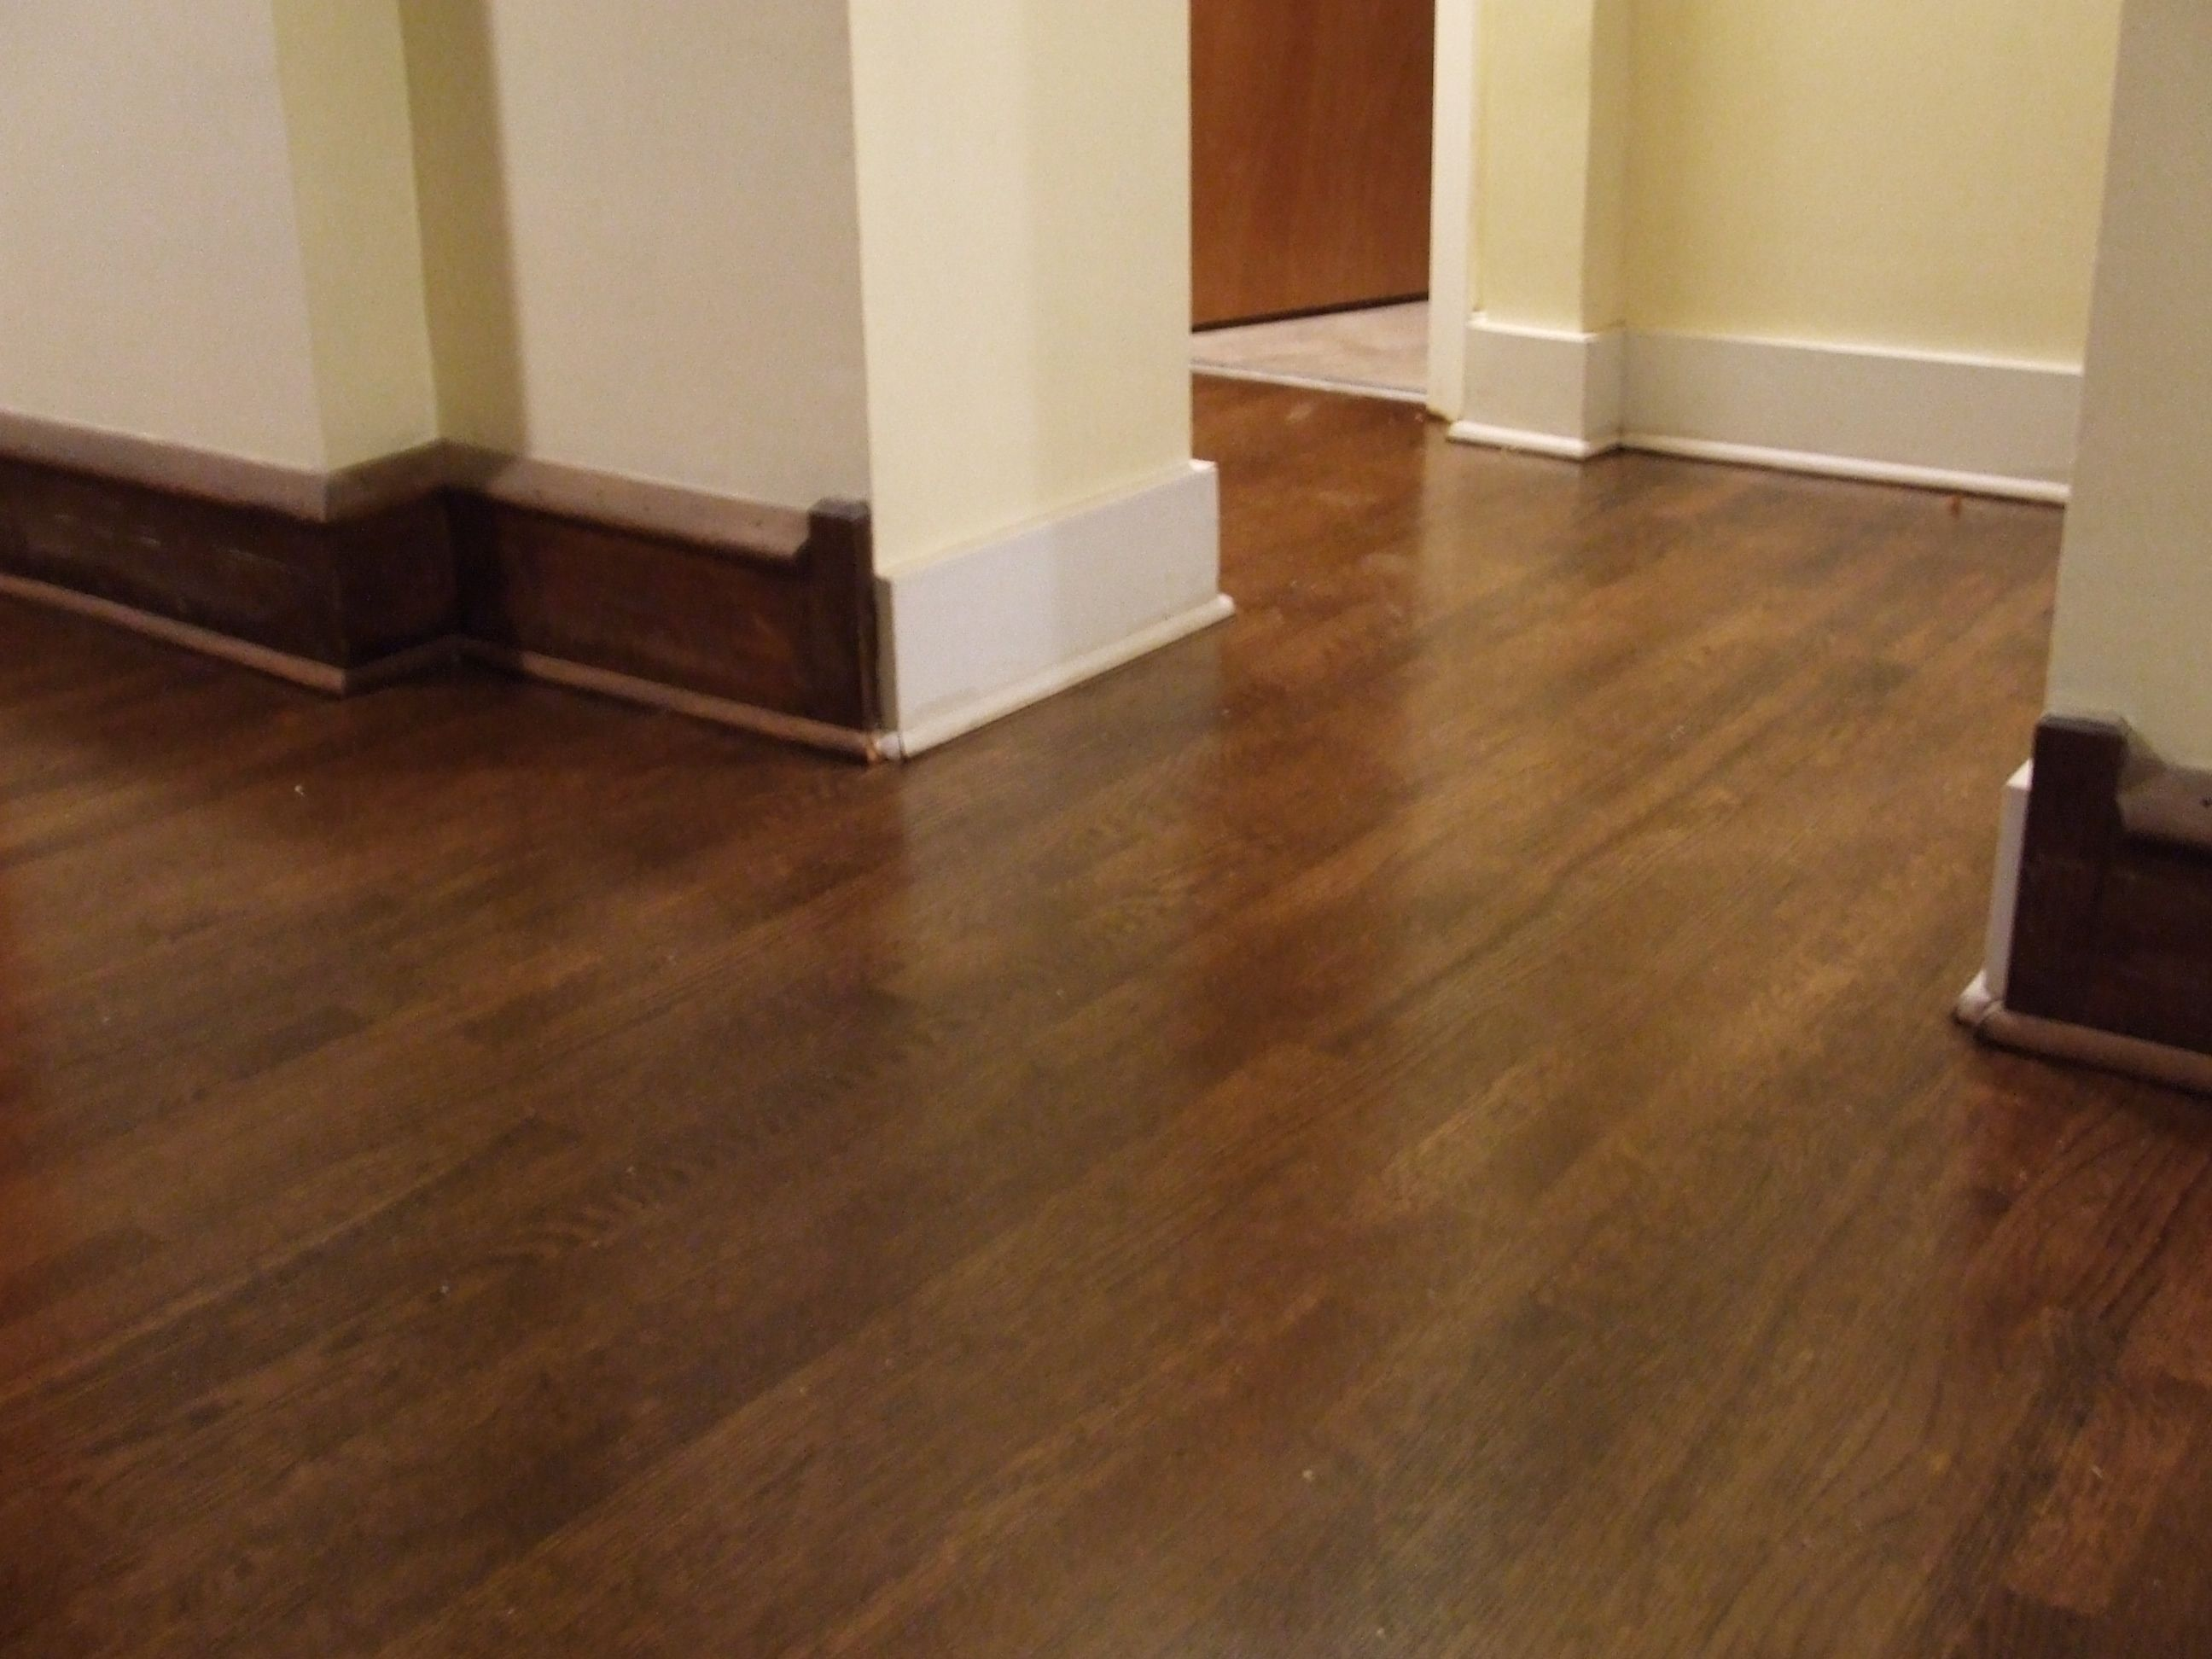 New Hardwood Floor Refinishing Pictures Stain Wood